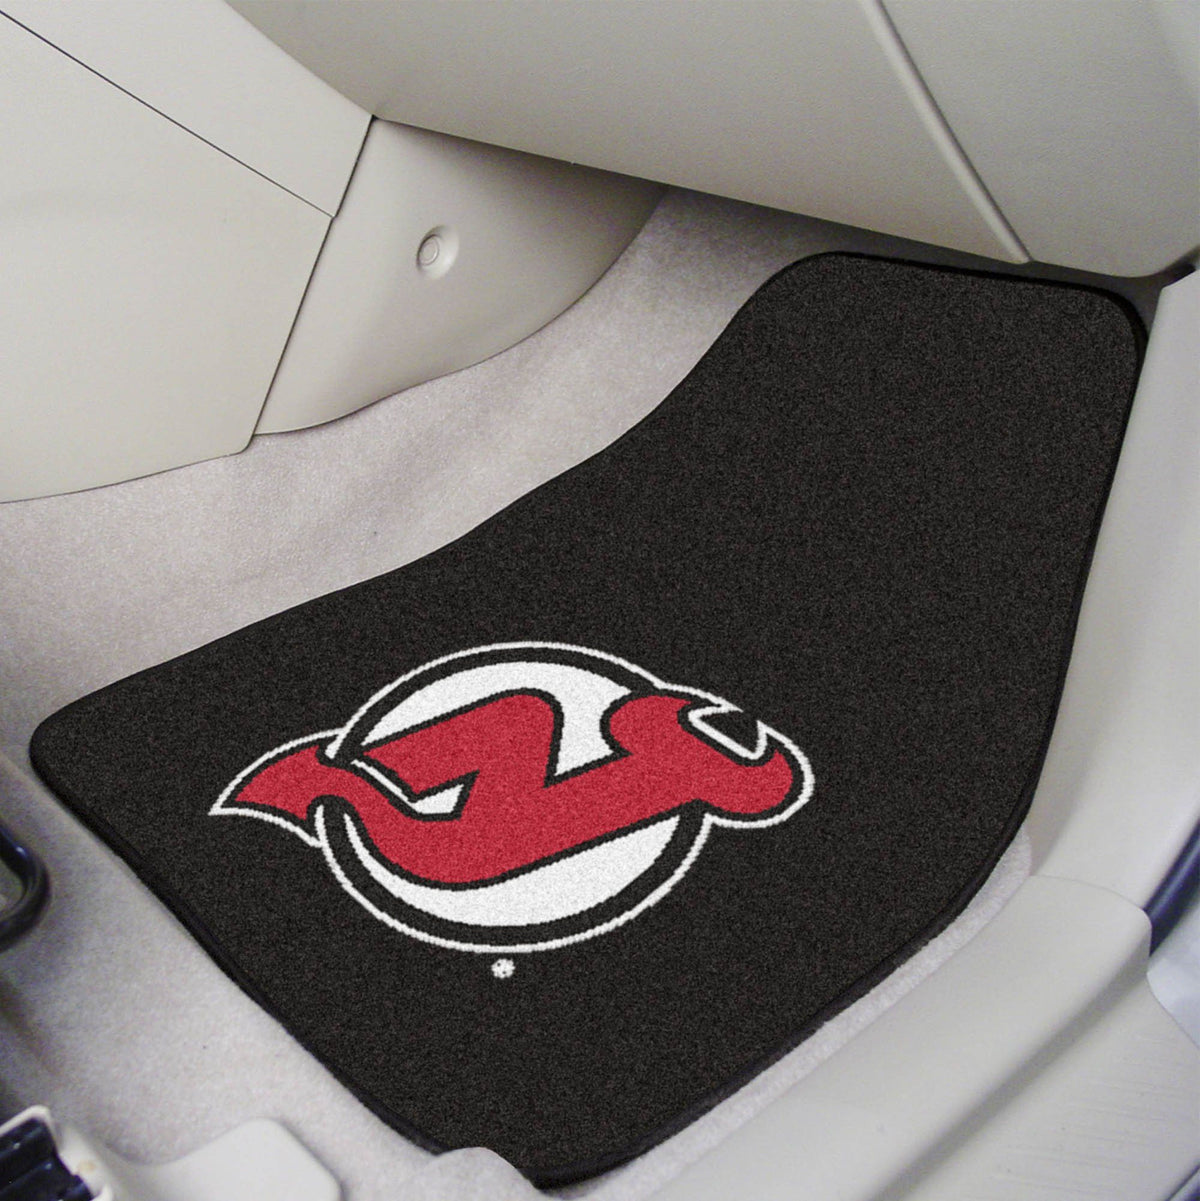 NHL - Carpet Car Mat, 2-Piece Set NHL Mats, Front Car Mats, 2-pc Carpet Car Mat Set, NHL, Auto Fan Mats New Jersey Devils